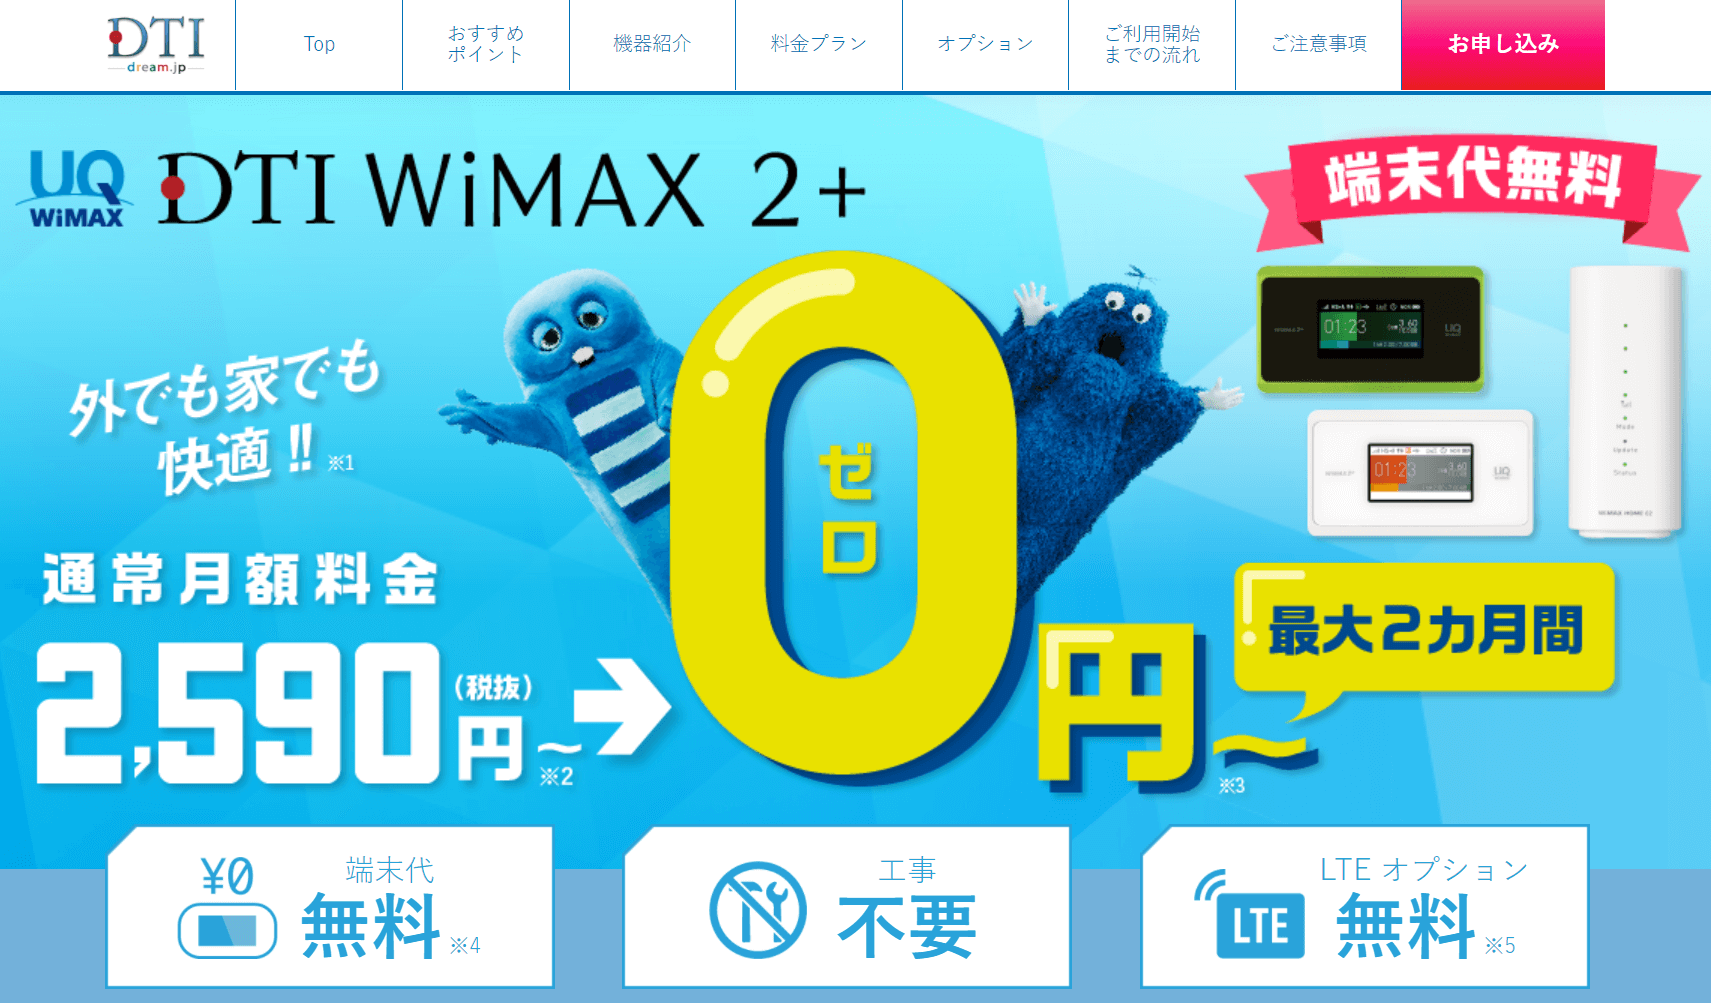 WiMAX_キャンペーン_比較_DTIロゴ